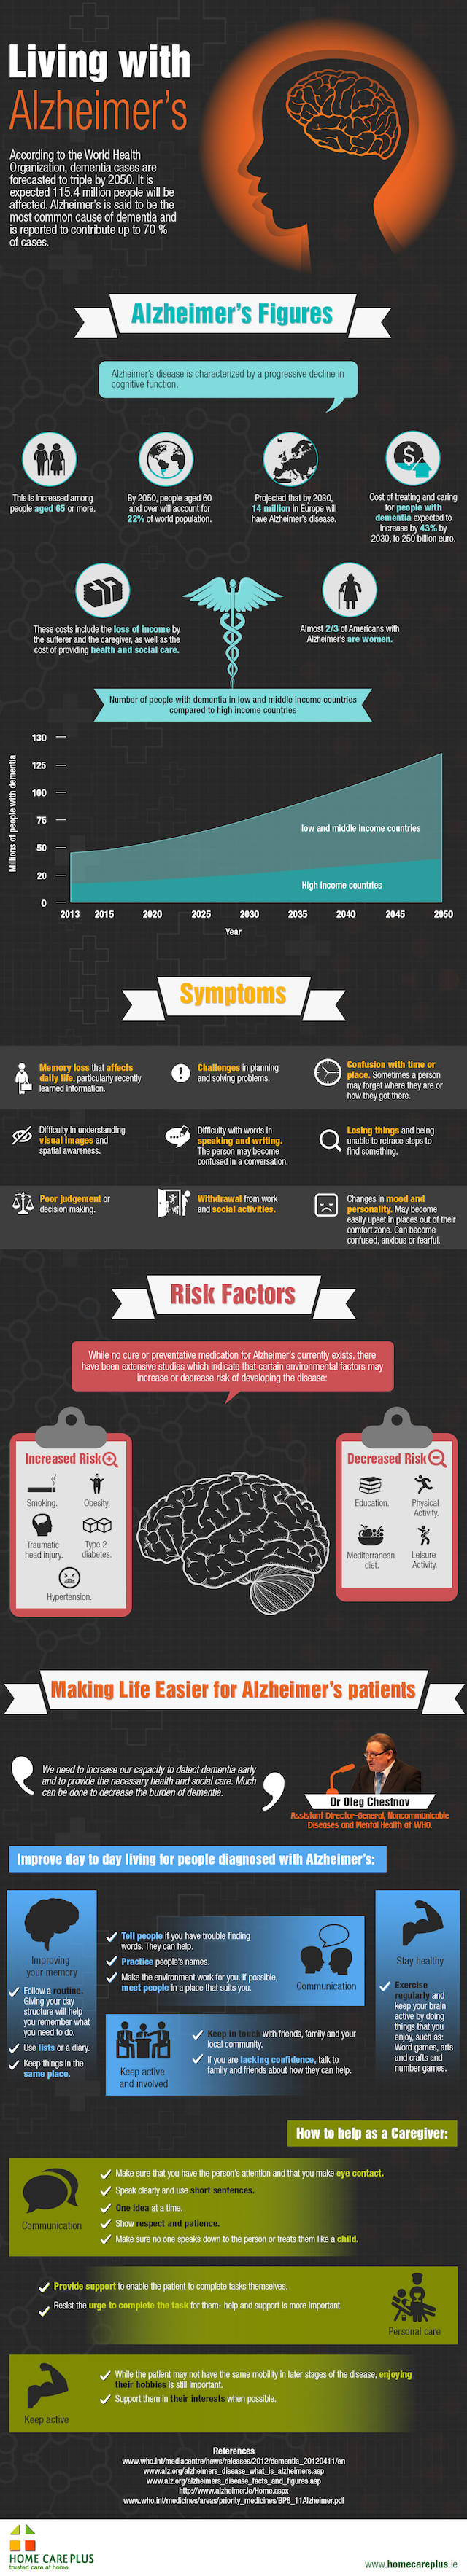 Living with Alzheimer Infographic